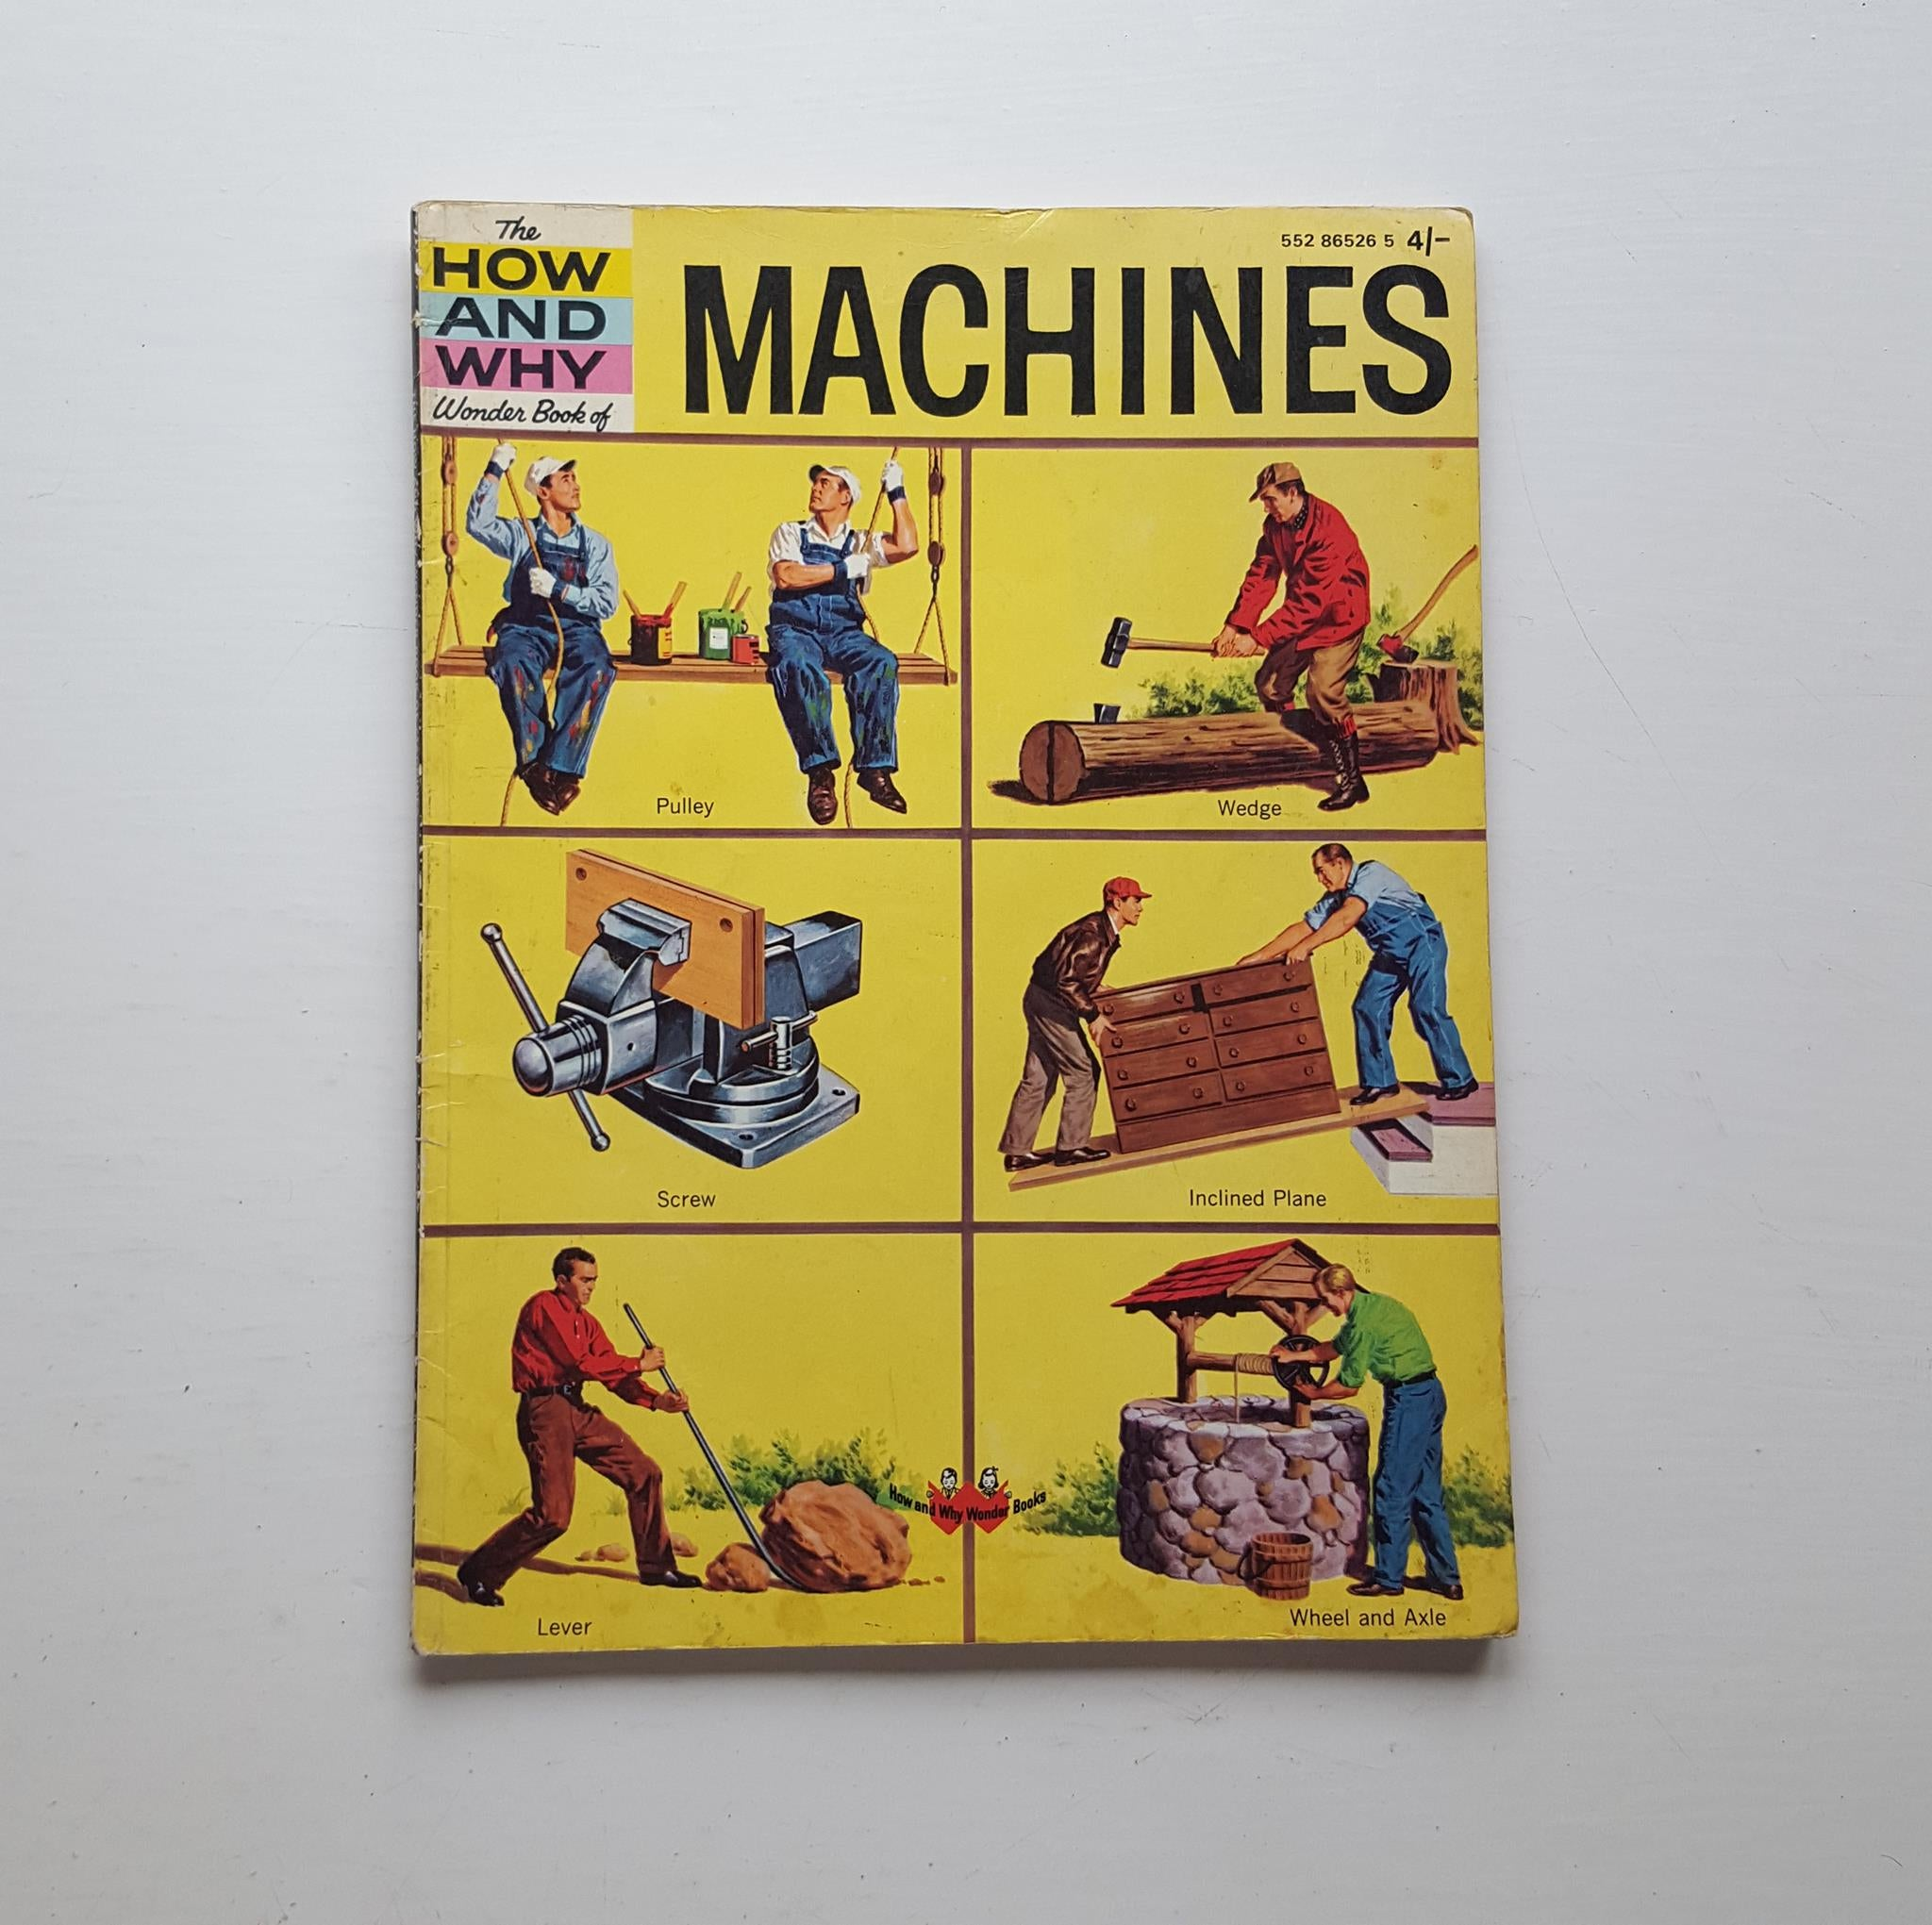 The How and Why Wonder Book of Machines by Dr Jerome J Notkin and Sidney Gulkin